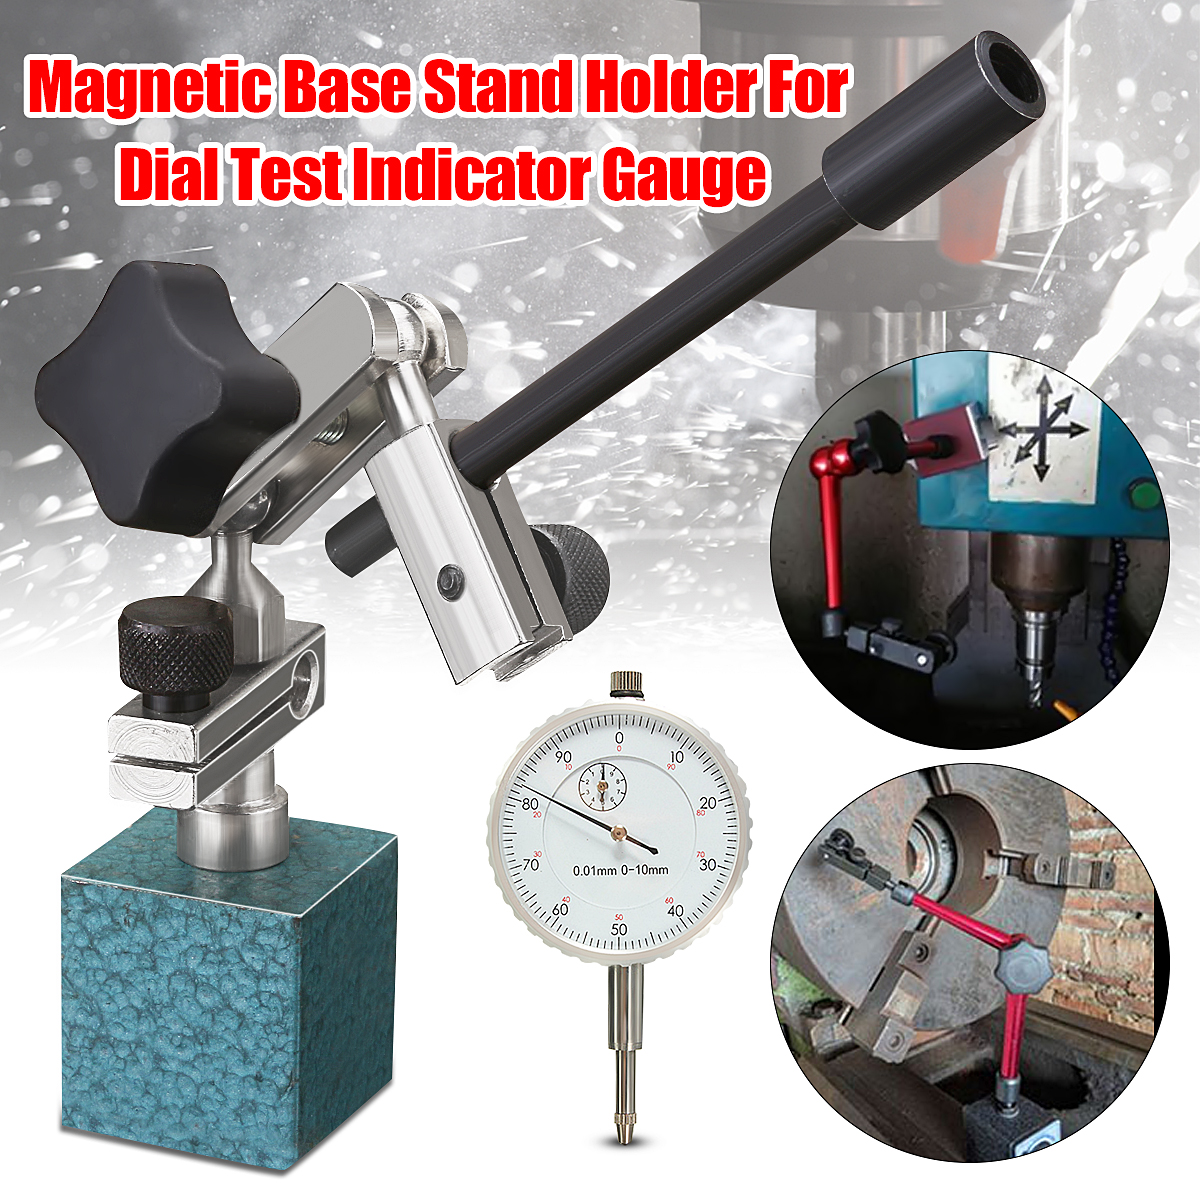 Adjustable Magnetic Base Stand Holder For Dial Test Indicator Gauge